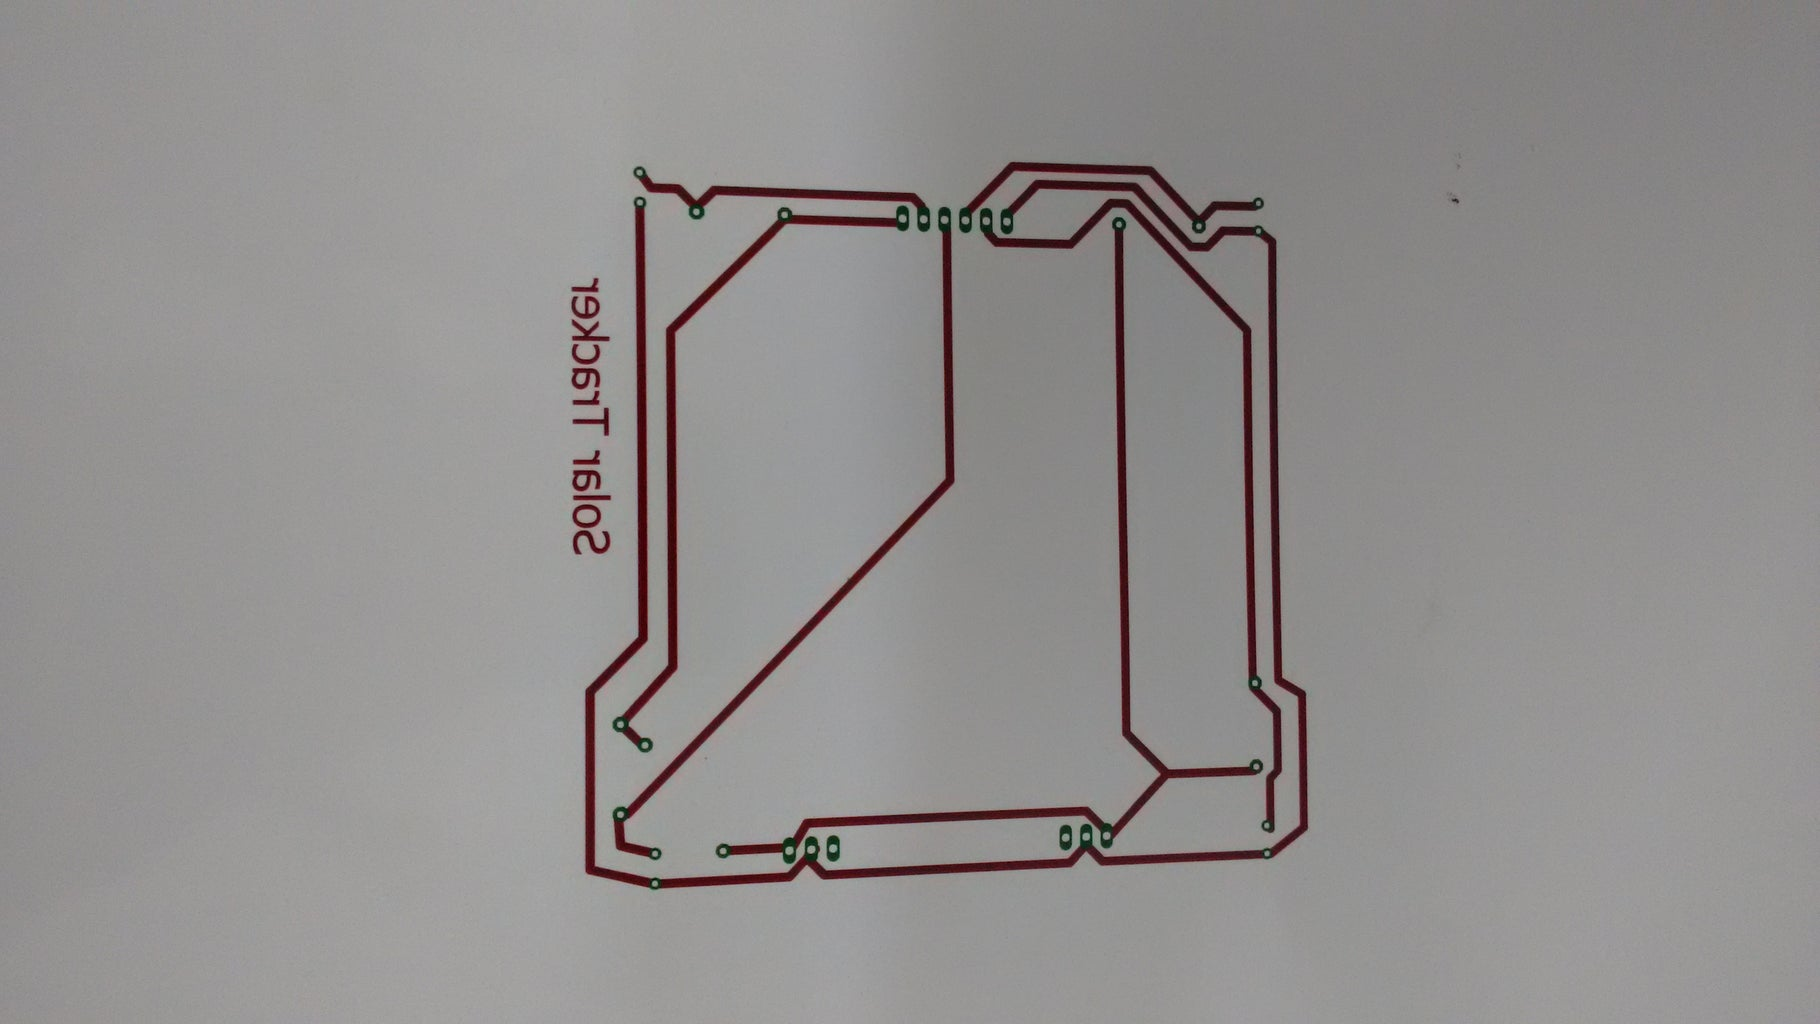 Design and Manufacture PCB (optional Step)